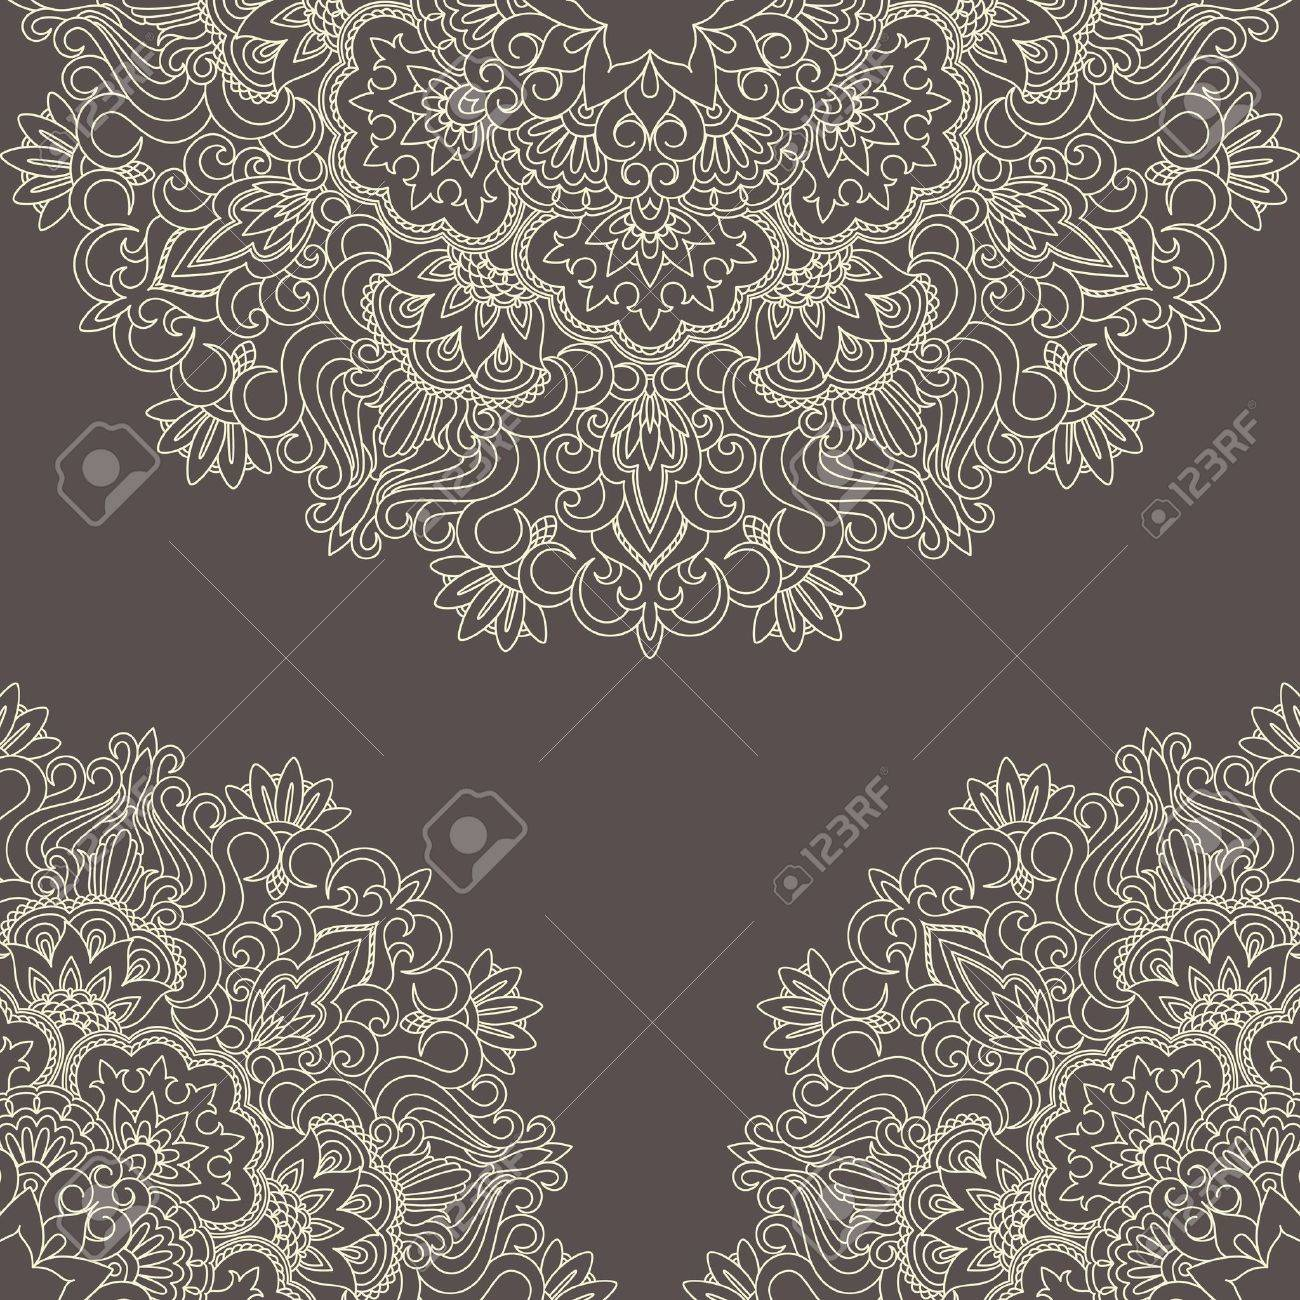 Vector illustration with vintage pattern for print, embroidery. Stock Vector - 16399875